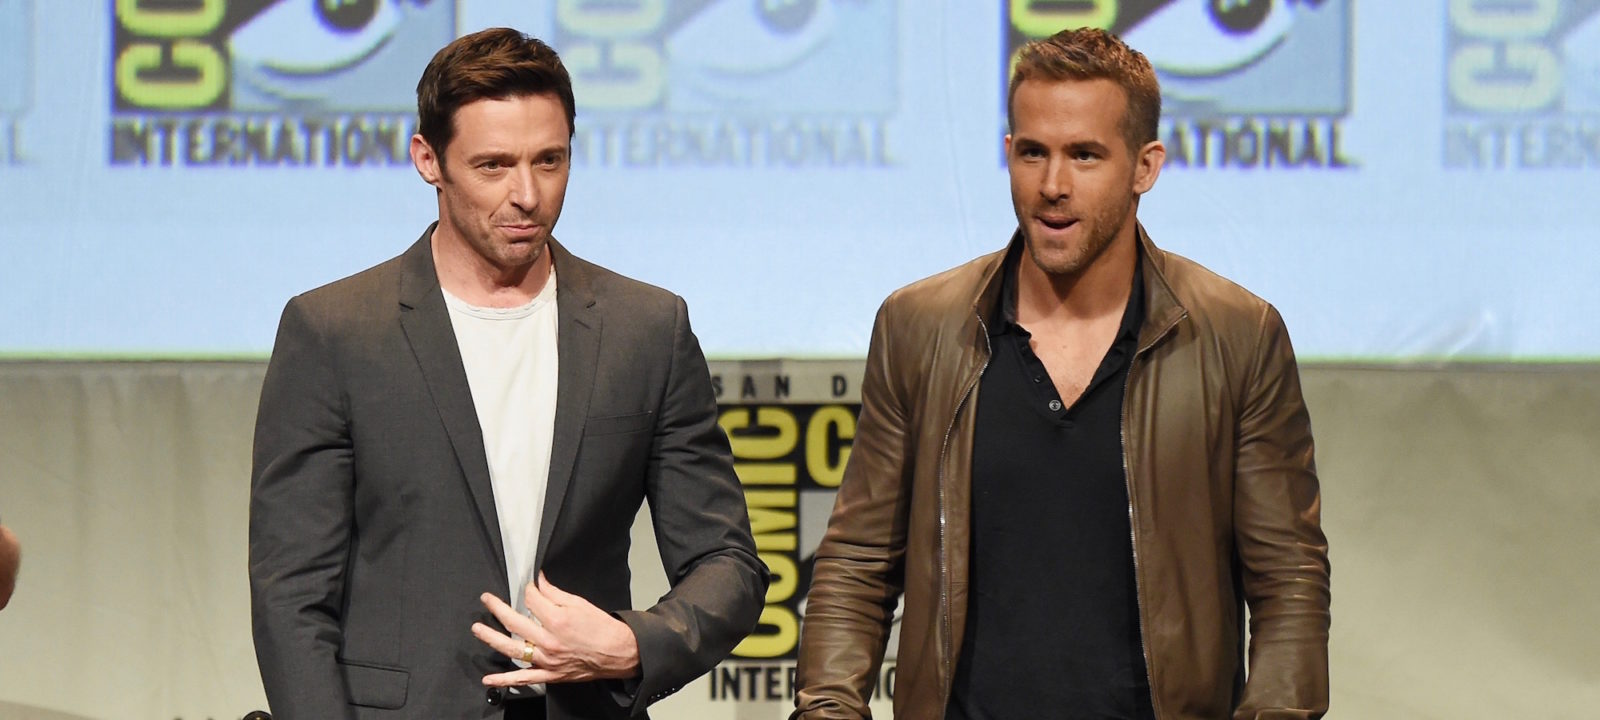 Comic-Con International 2015 – 20th Century FOX Panel